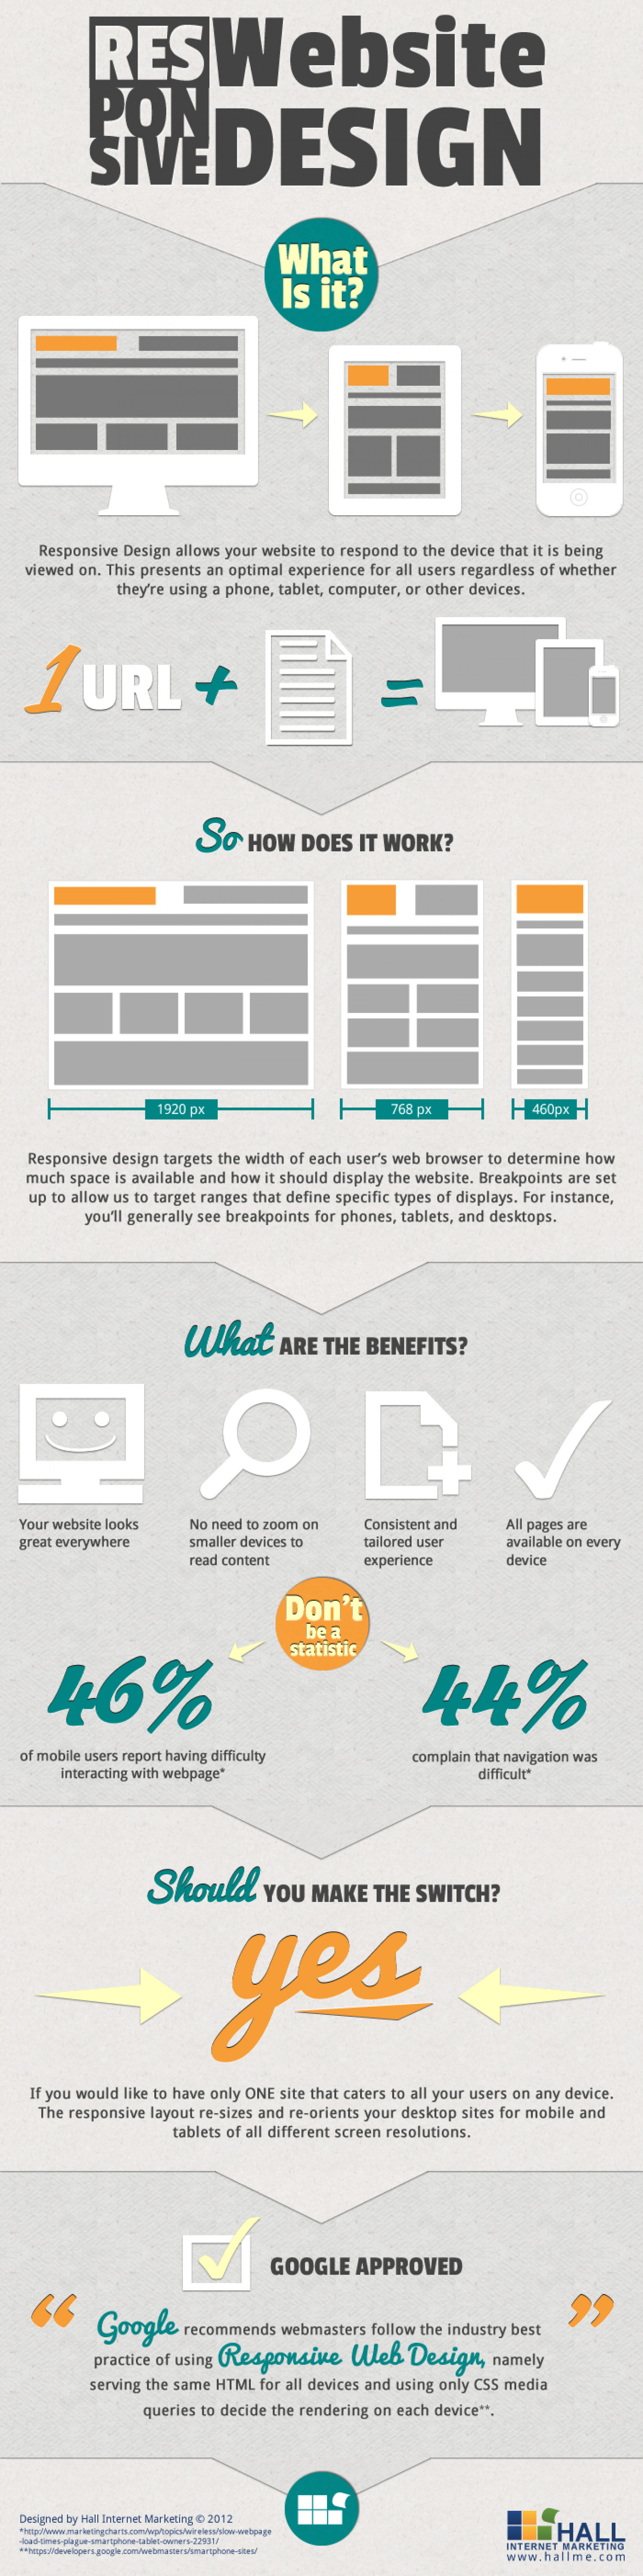 Responsive Website Design: What is it? Infographic